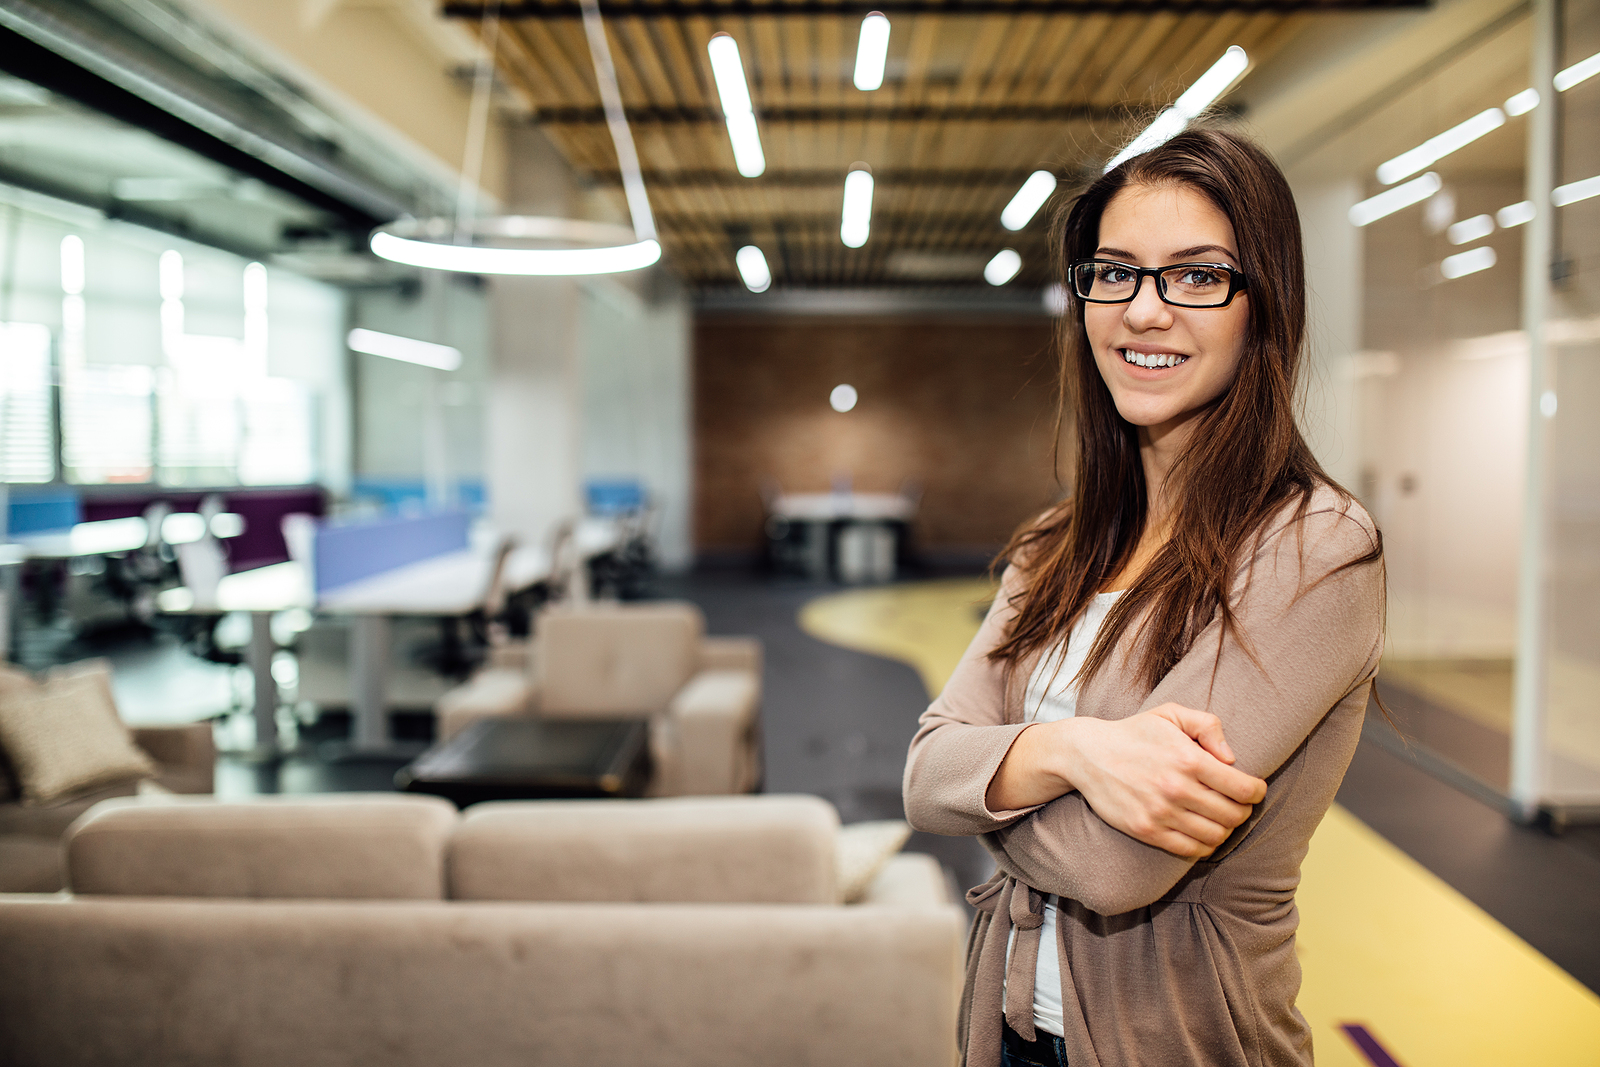 Best Ways to Find and Retain Talent for Small Business